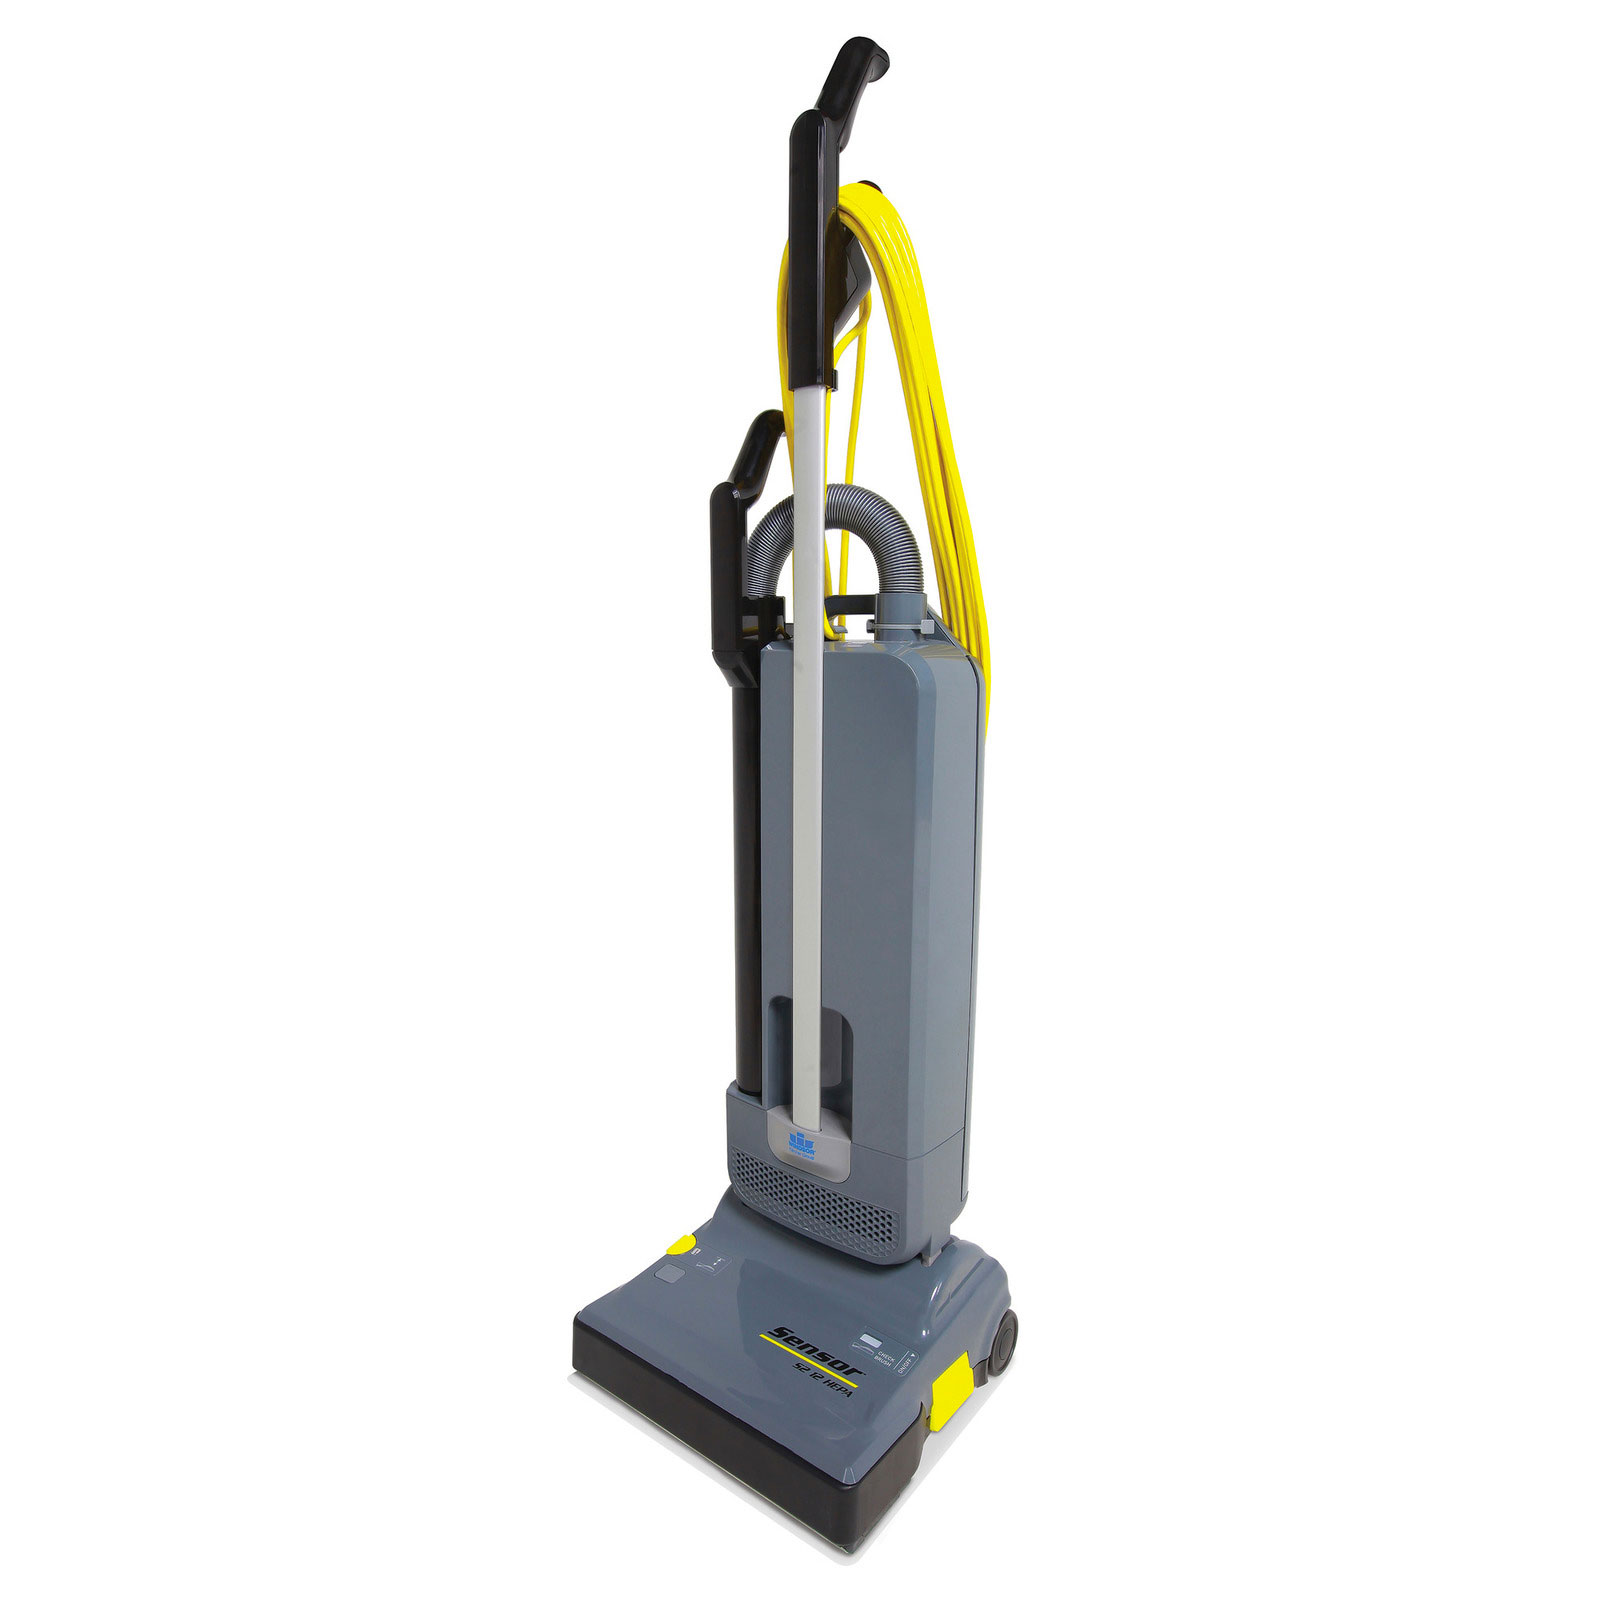 Windsor Sensor S2 HEPA 12 Inch Vacuum Cleaner 1.012-070.0 Freight Included 3Yr Repair Protection